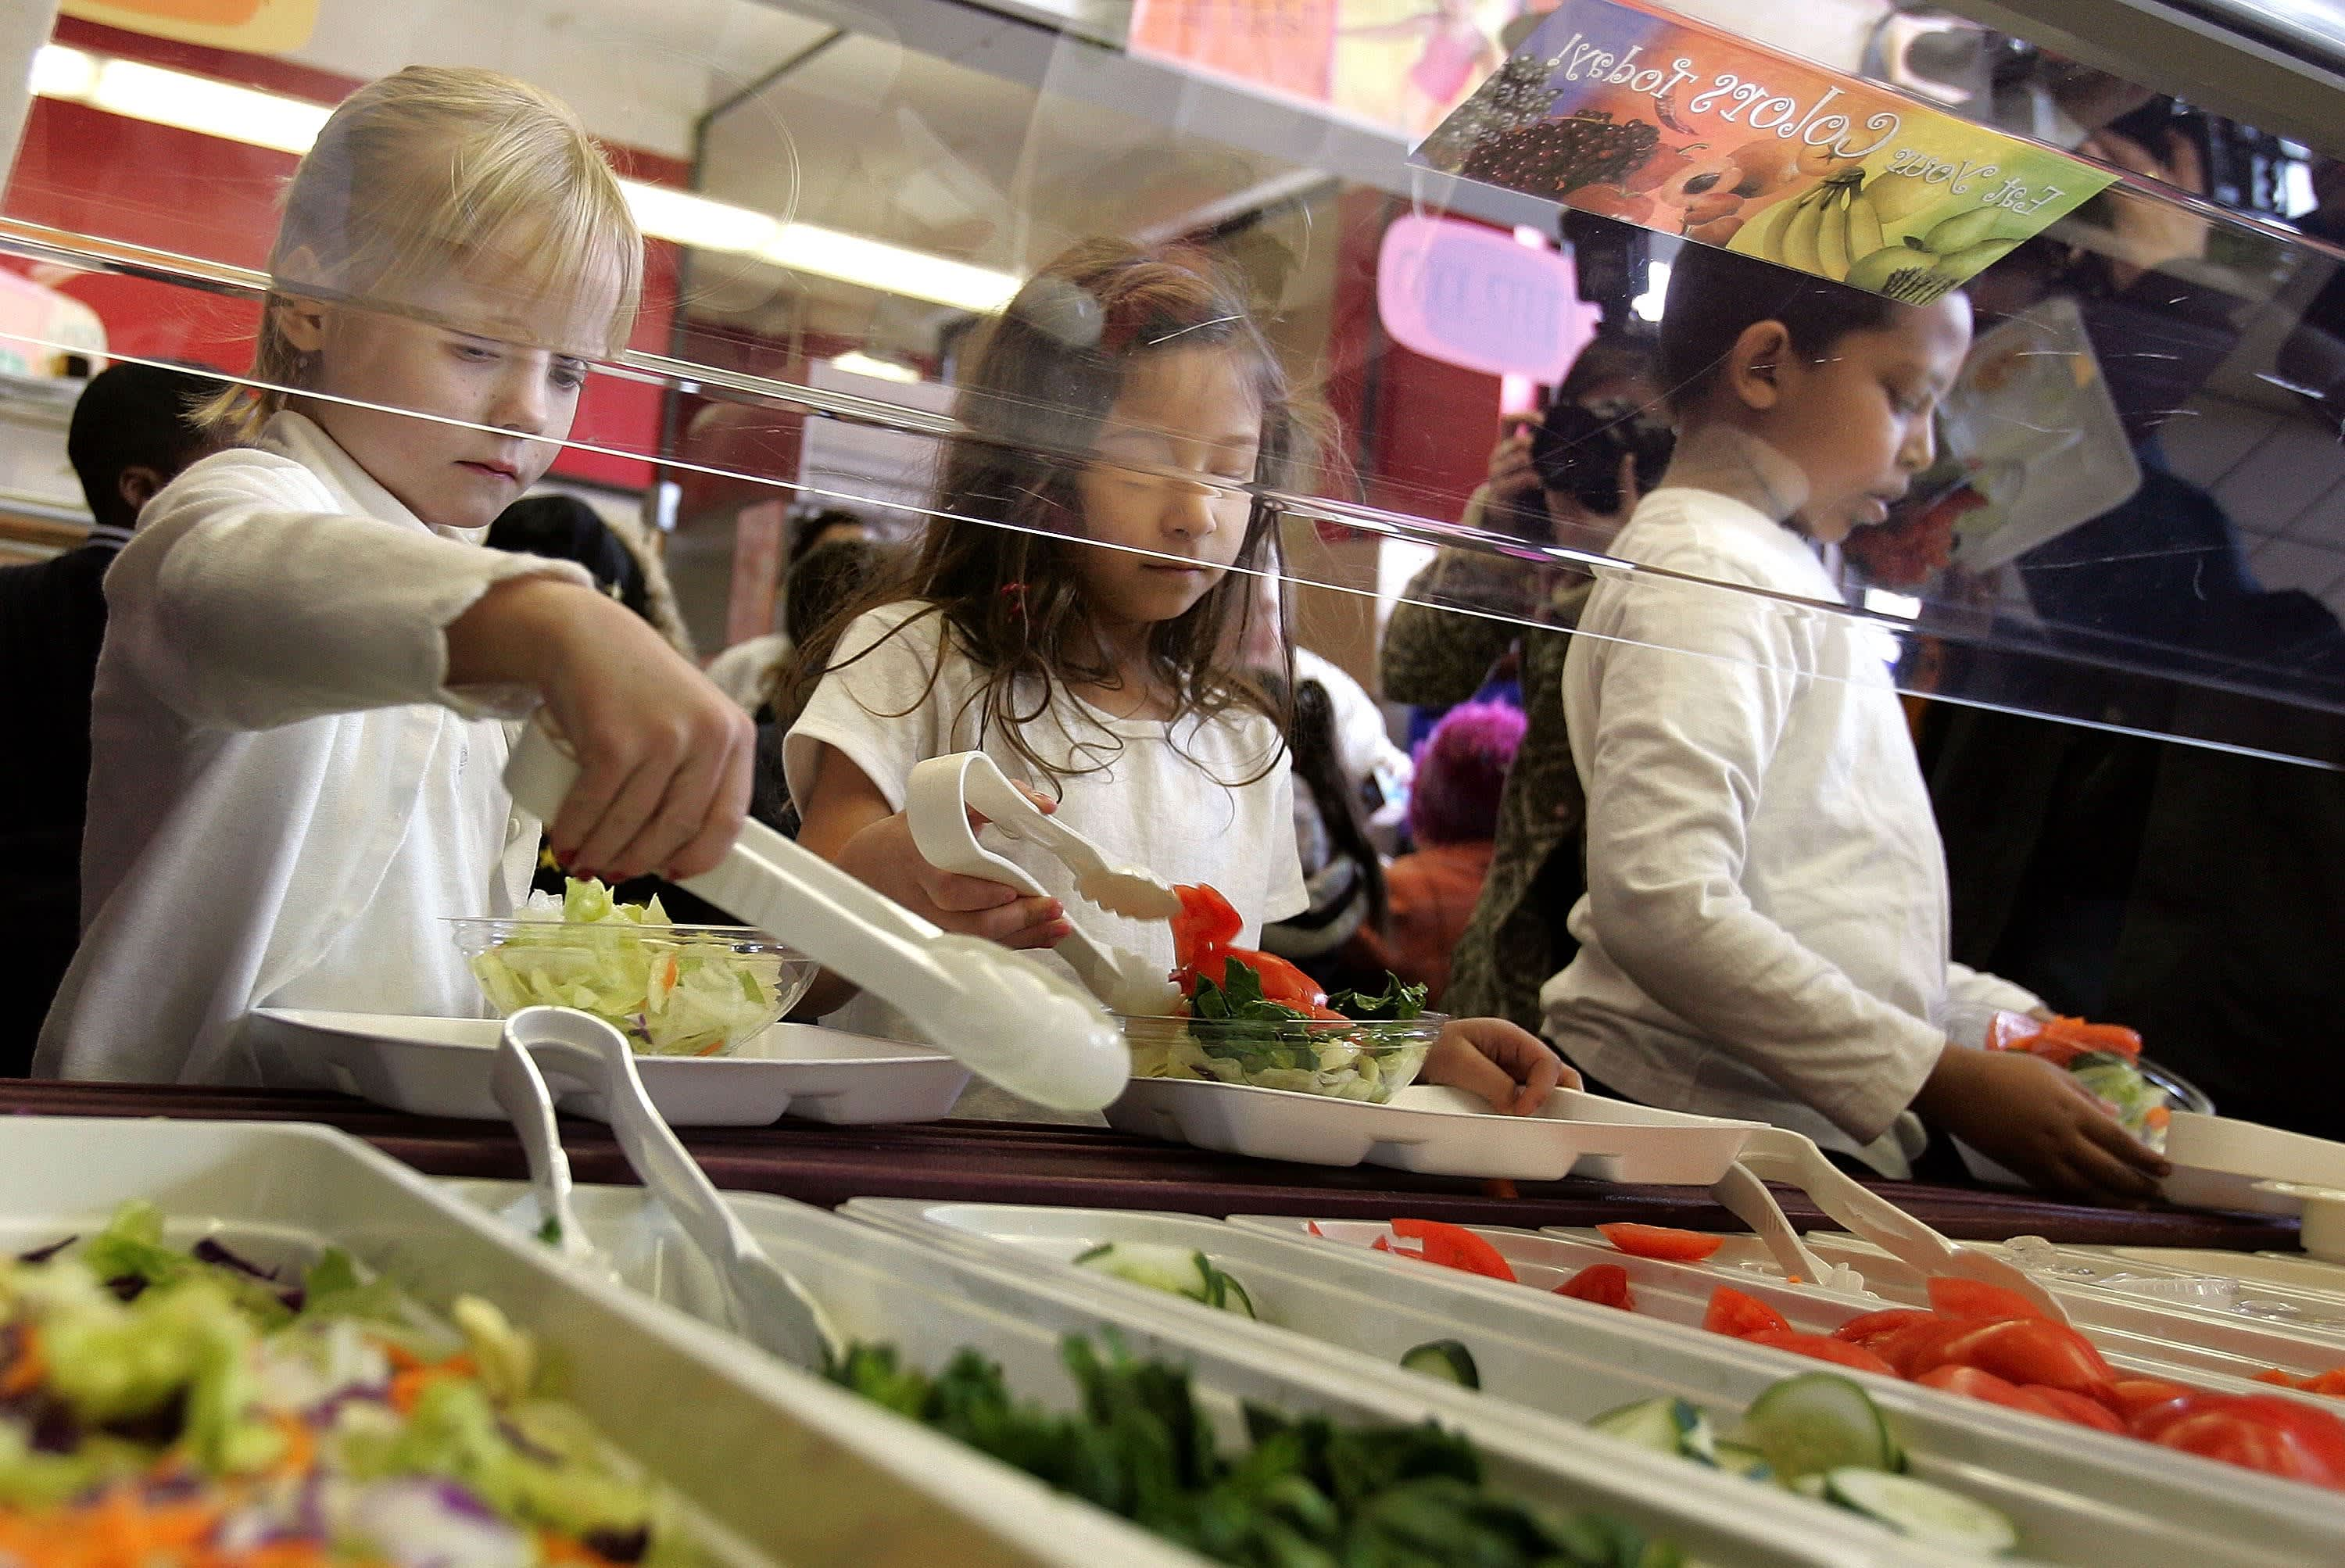 Lunch Lady Denies Food to First Grader Who Cant Afford It Lunch Lady Denies Food to First Grader Who Cant Afford It new images